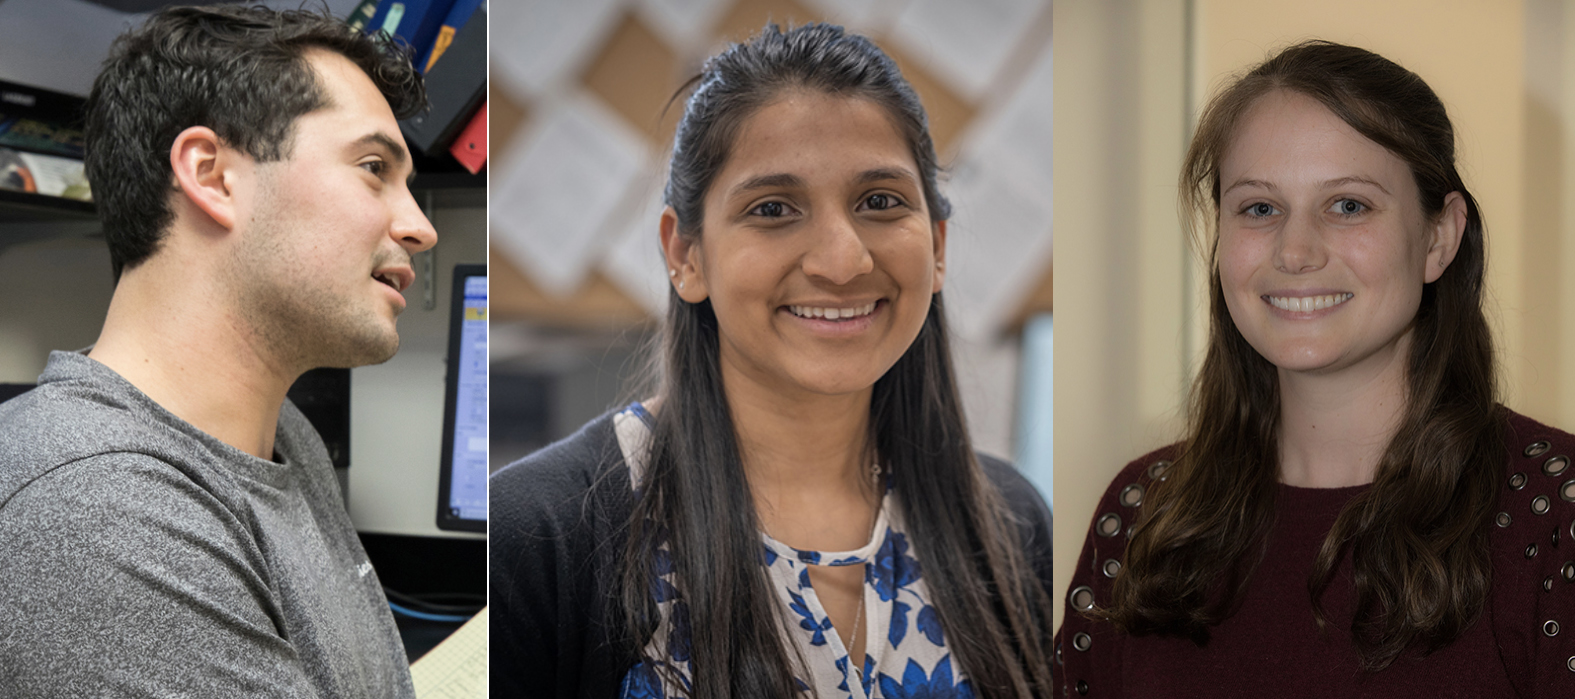 Miami doctoral students (left to right) Jared Tangeman, Akanksha Das and Shelby Ortiz were awarded NSF Graduate Research Fellowships.